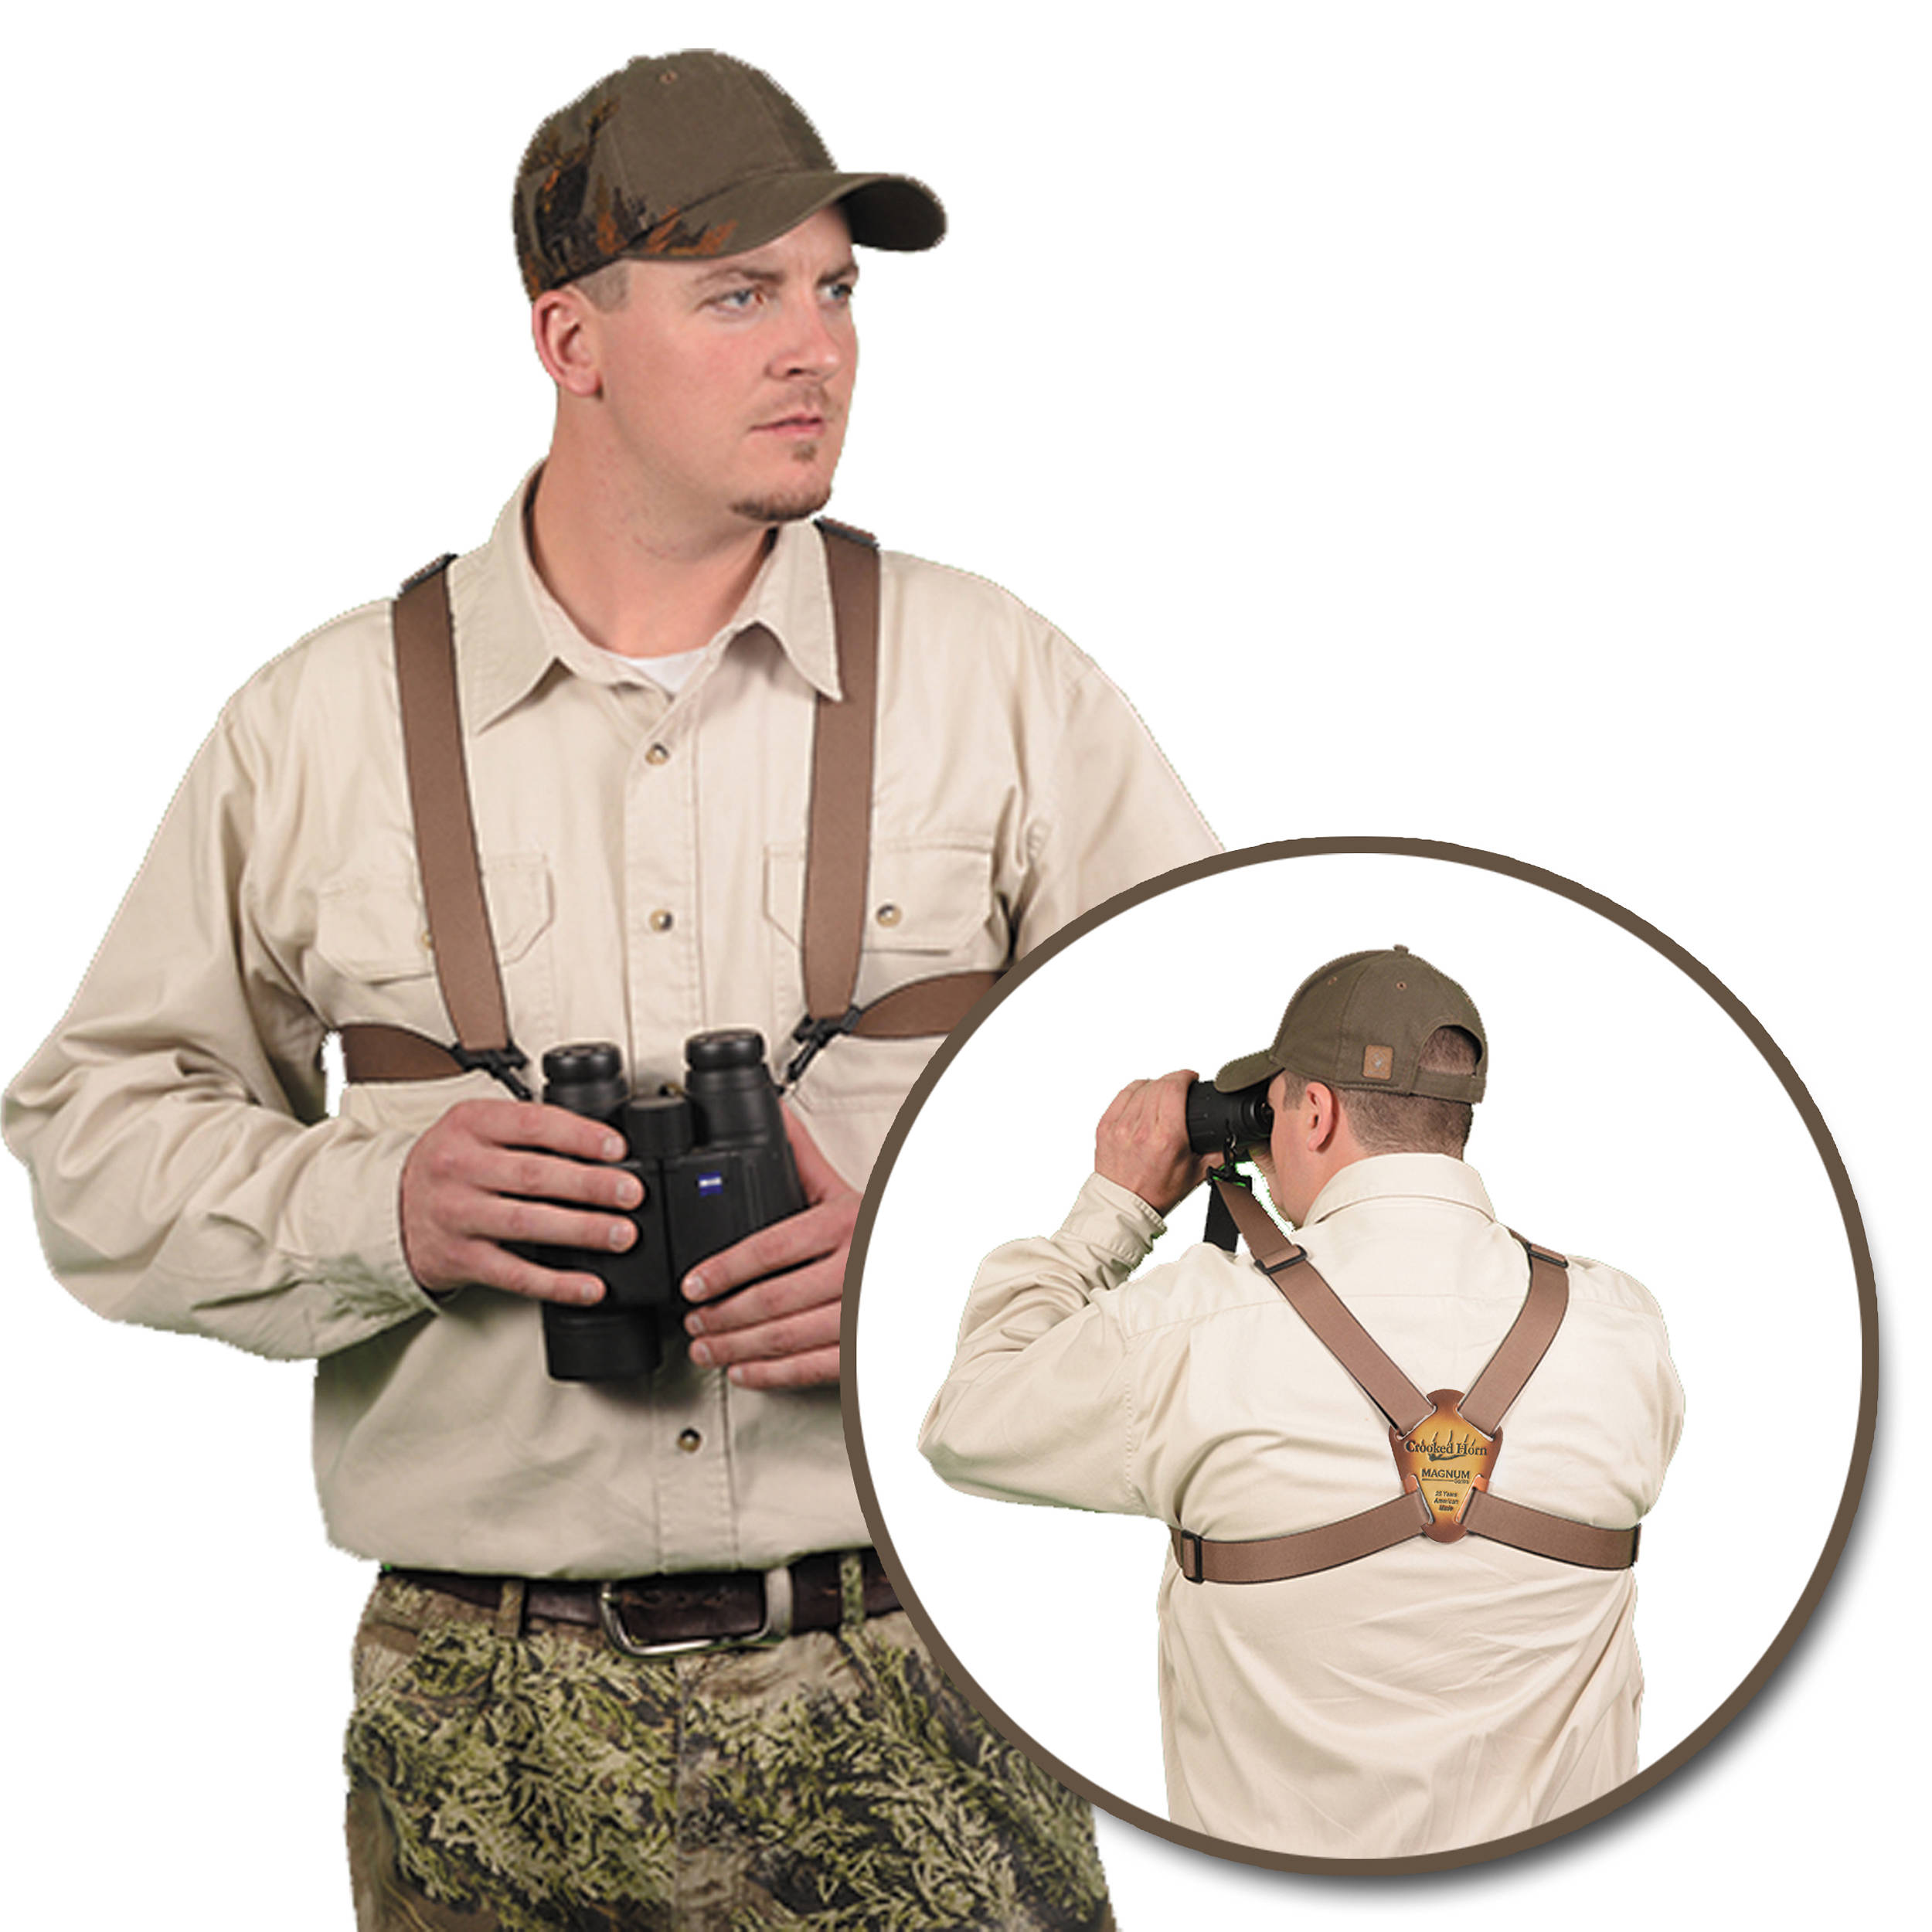 crooked_horn_outfitters_bs_127_magnum_bino_system_binocular_harness_1058611 binocular quick release strap b&h photo video